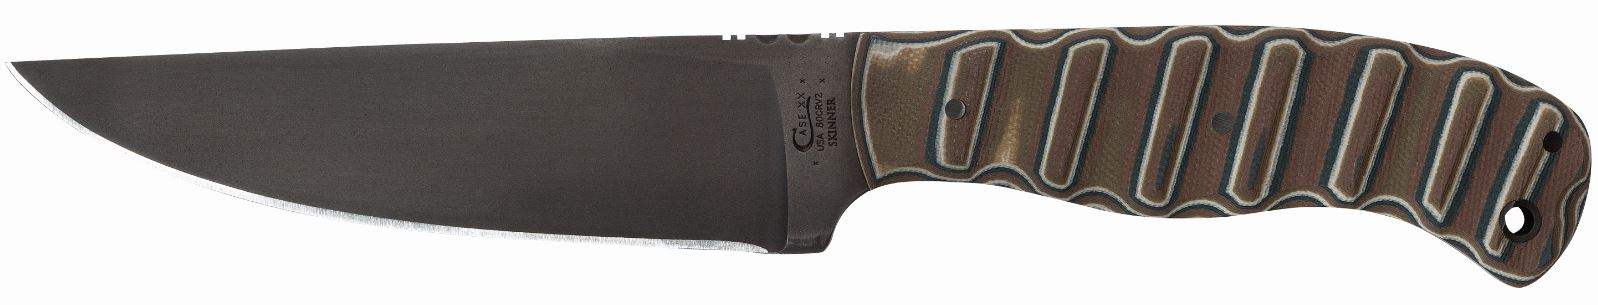 Case Pocket Knives News & Events